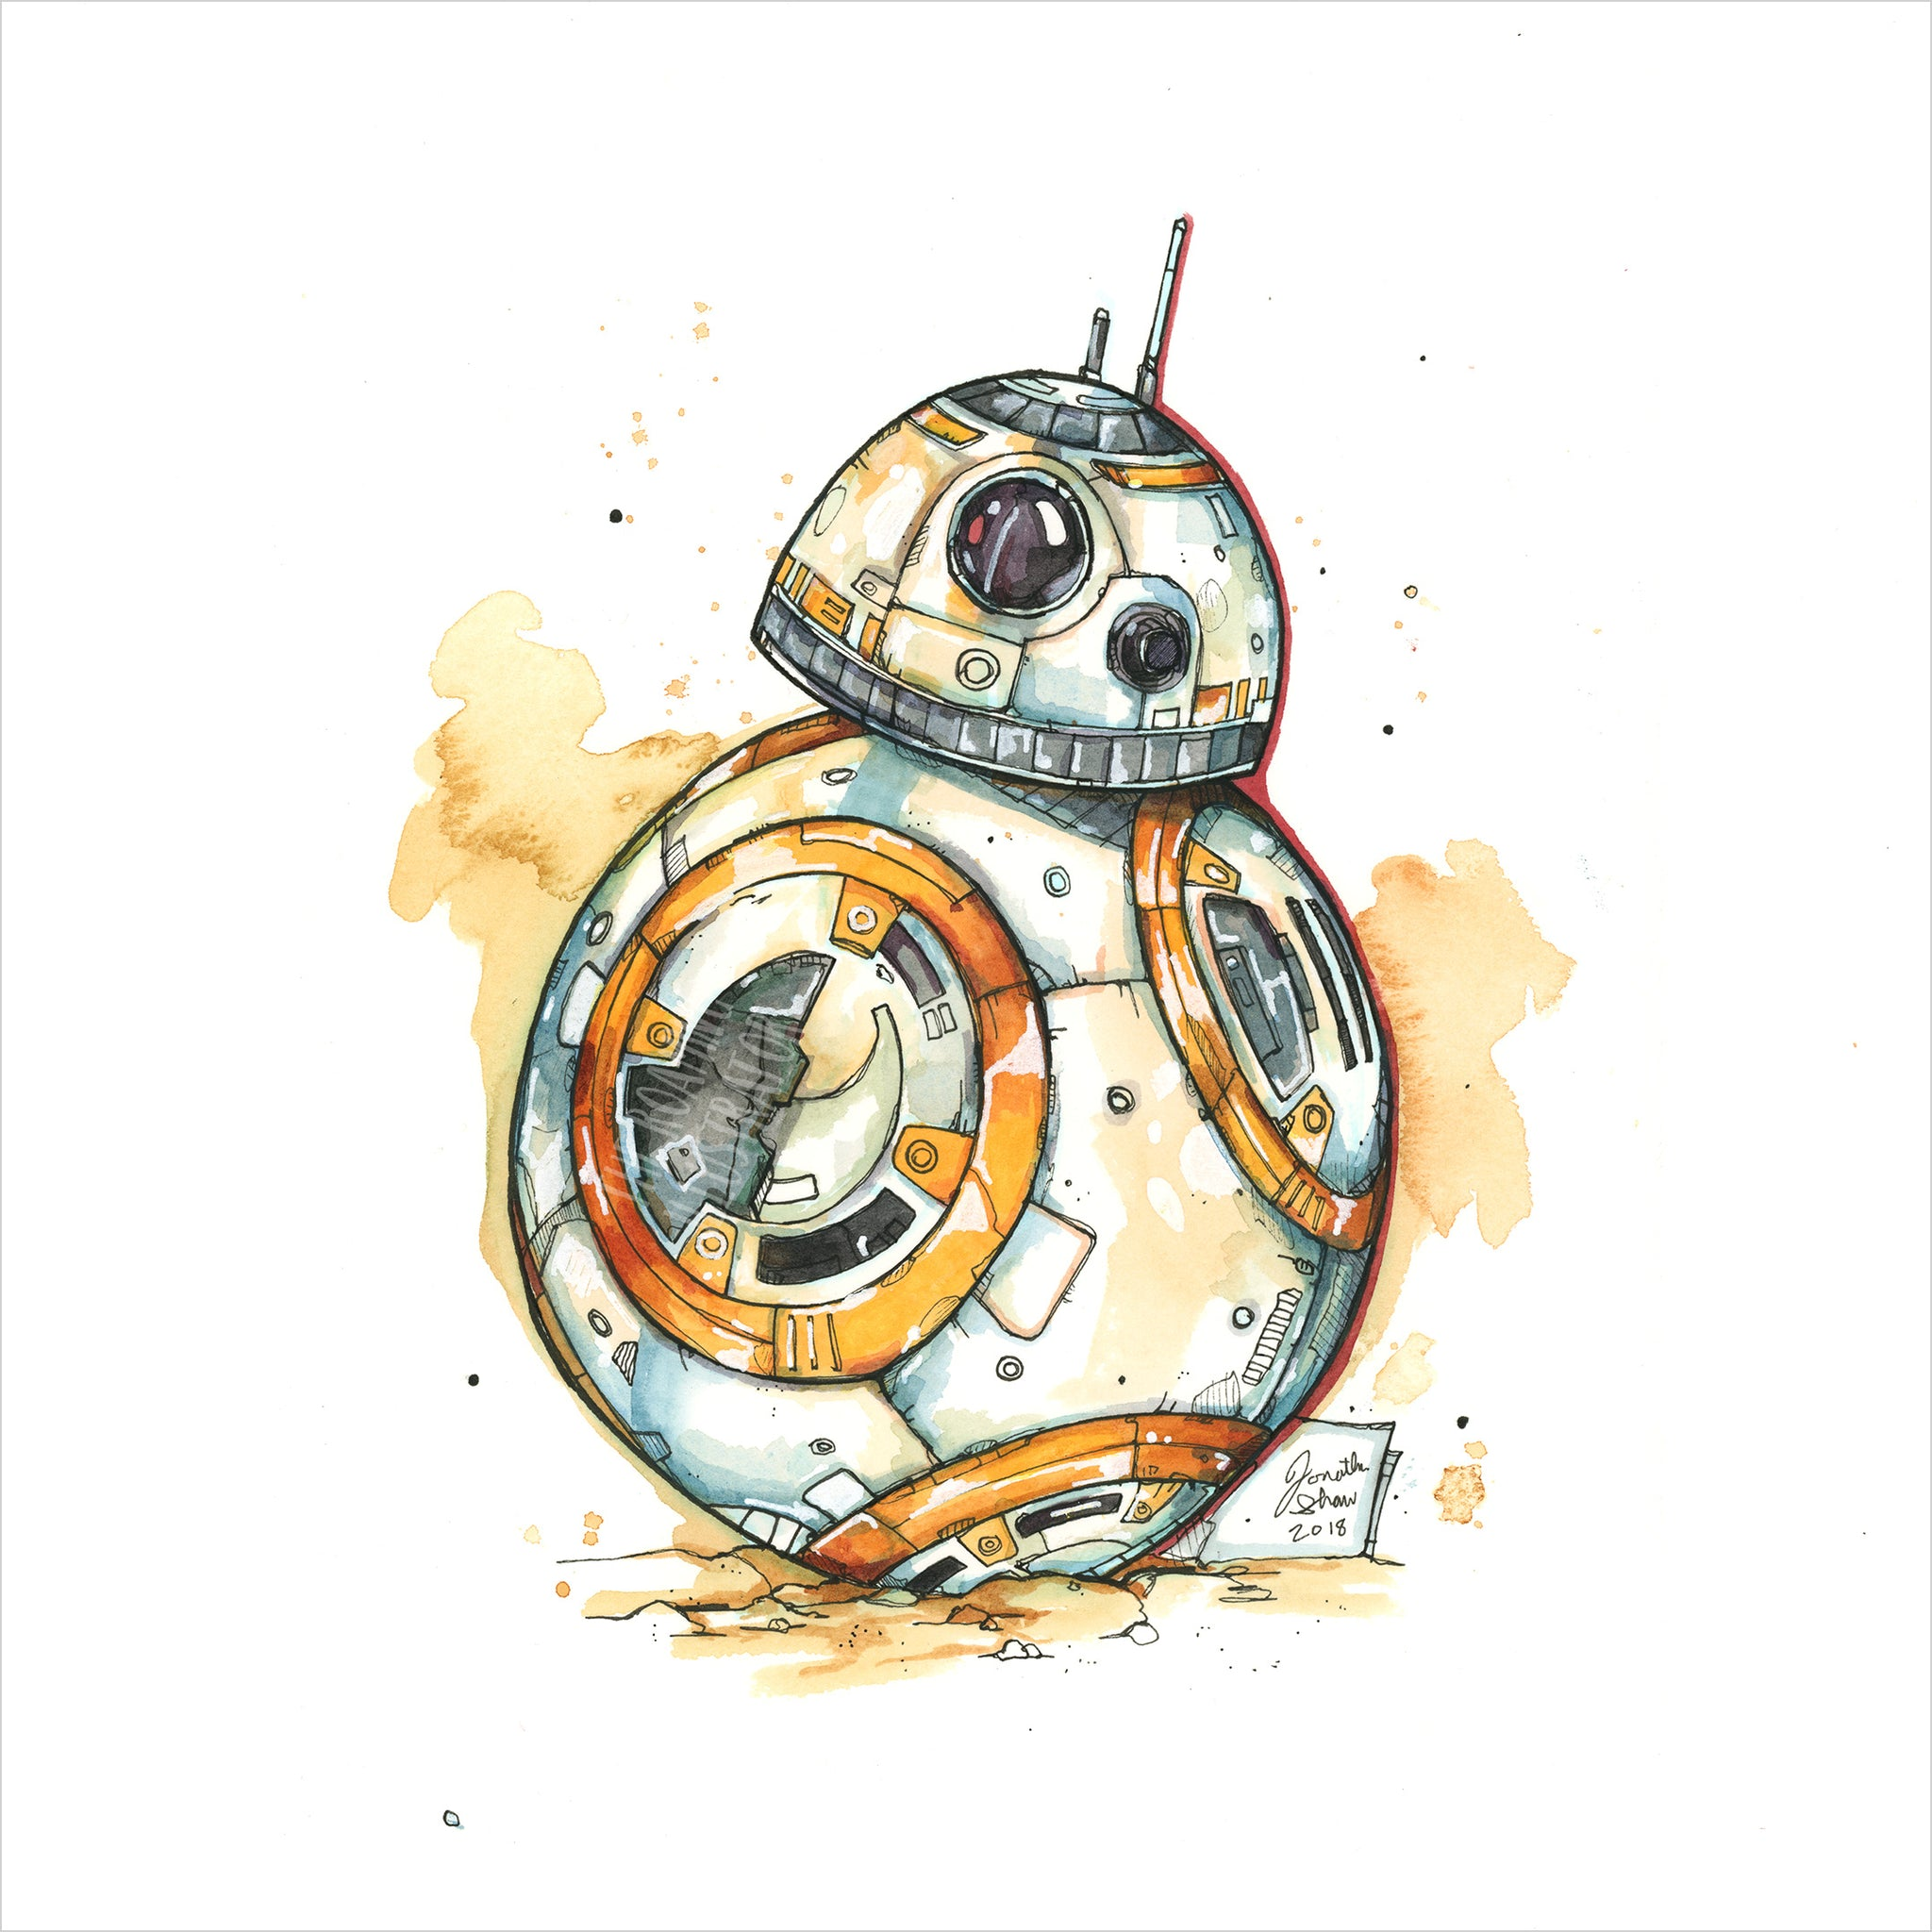 """BB-8"" - Original 8x10 Illustration (SOLD)"